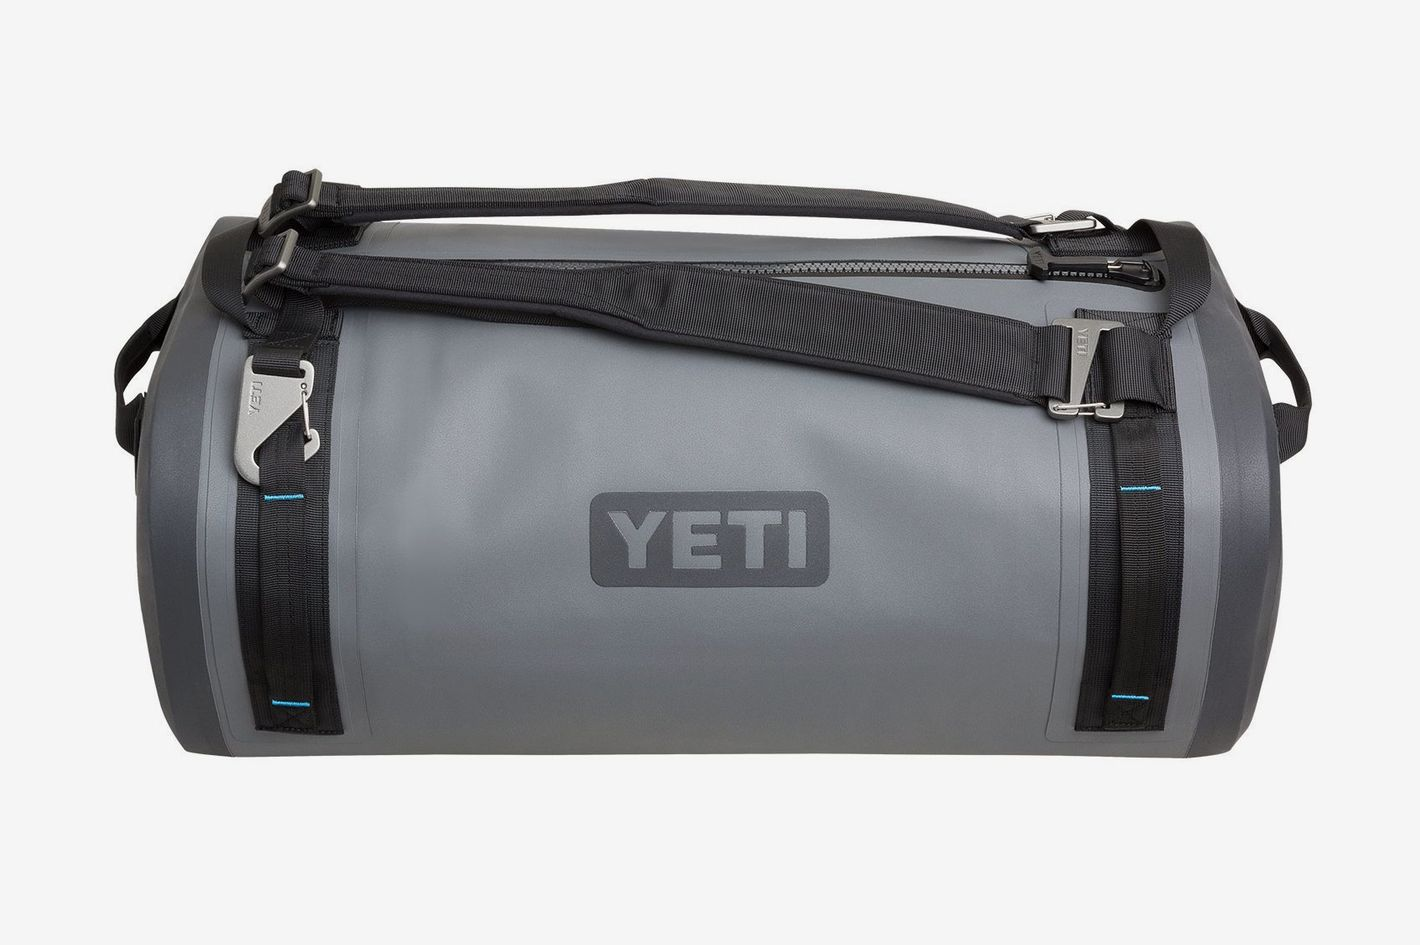 Yeti Panga Airtight Waterproof Submersible Duffel Bag